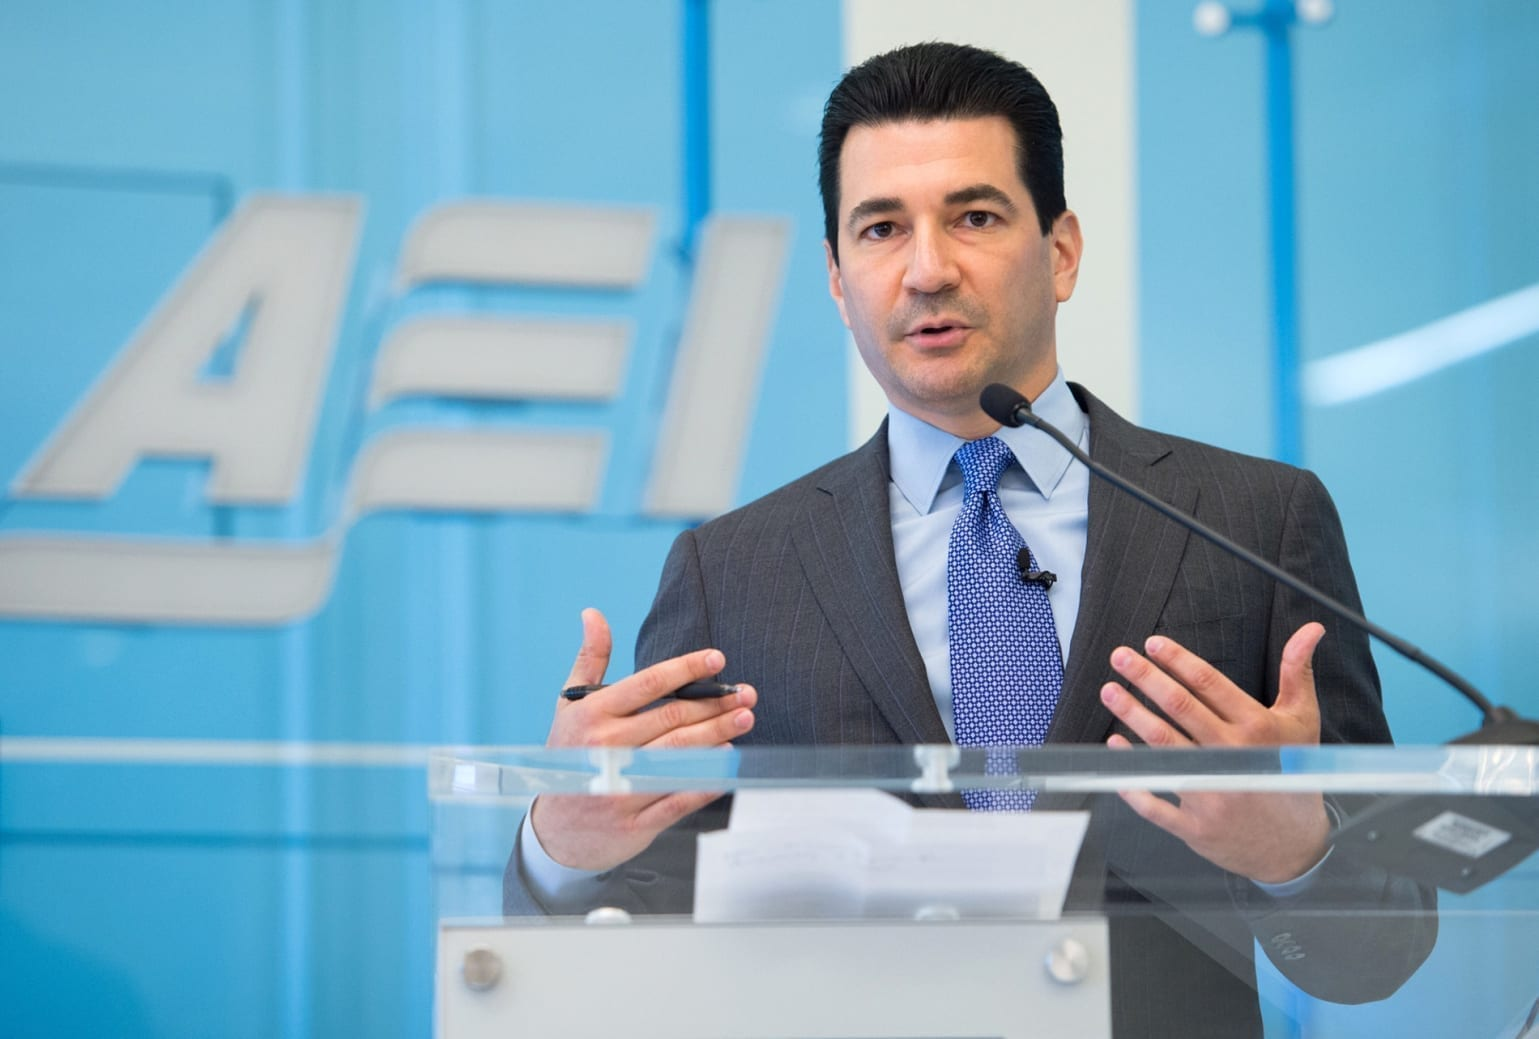 scott gottlieb nominated as commissioner of fda legal reader scott gottlieb is donald trump s pick for commissioner of the food and drug administration picture courtesy of the american enterprise institute